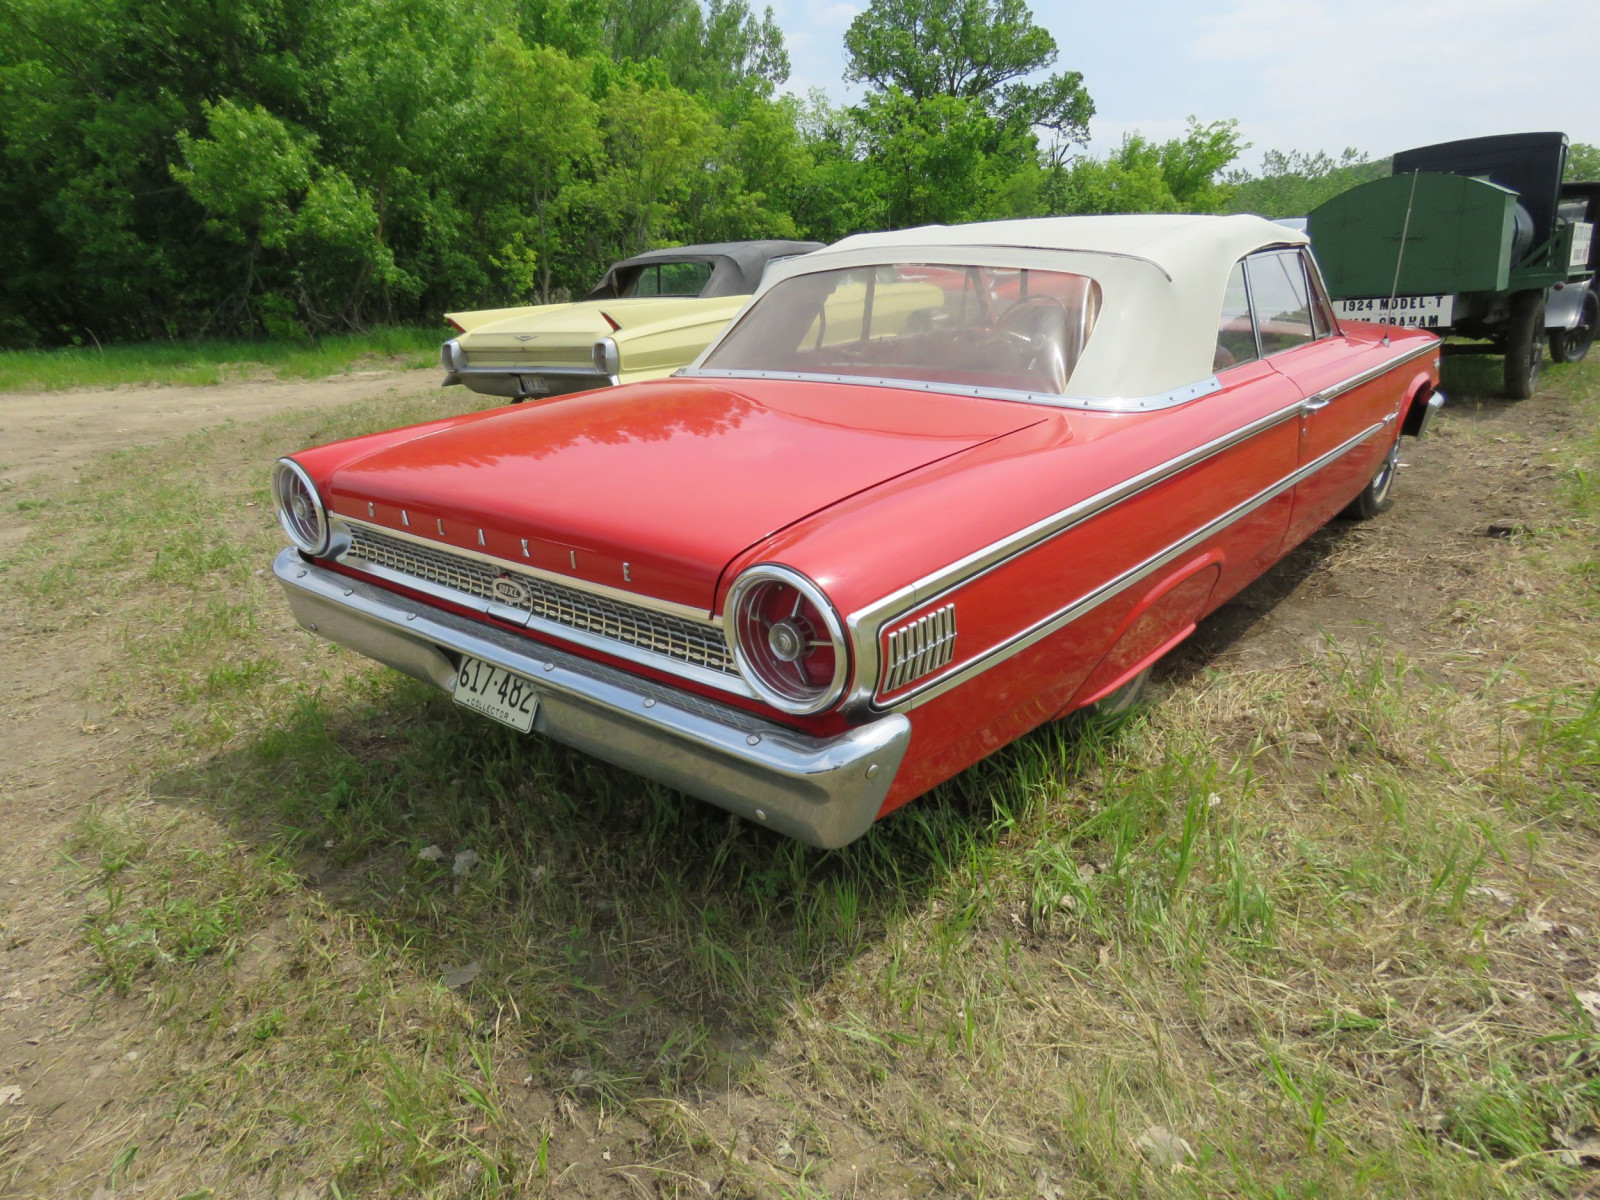 1963 Ford Galaxie 500XL Convertible 3G69Z183135 - Image 5